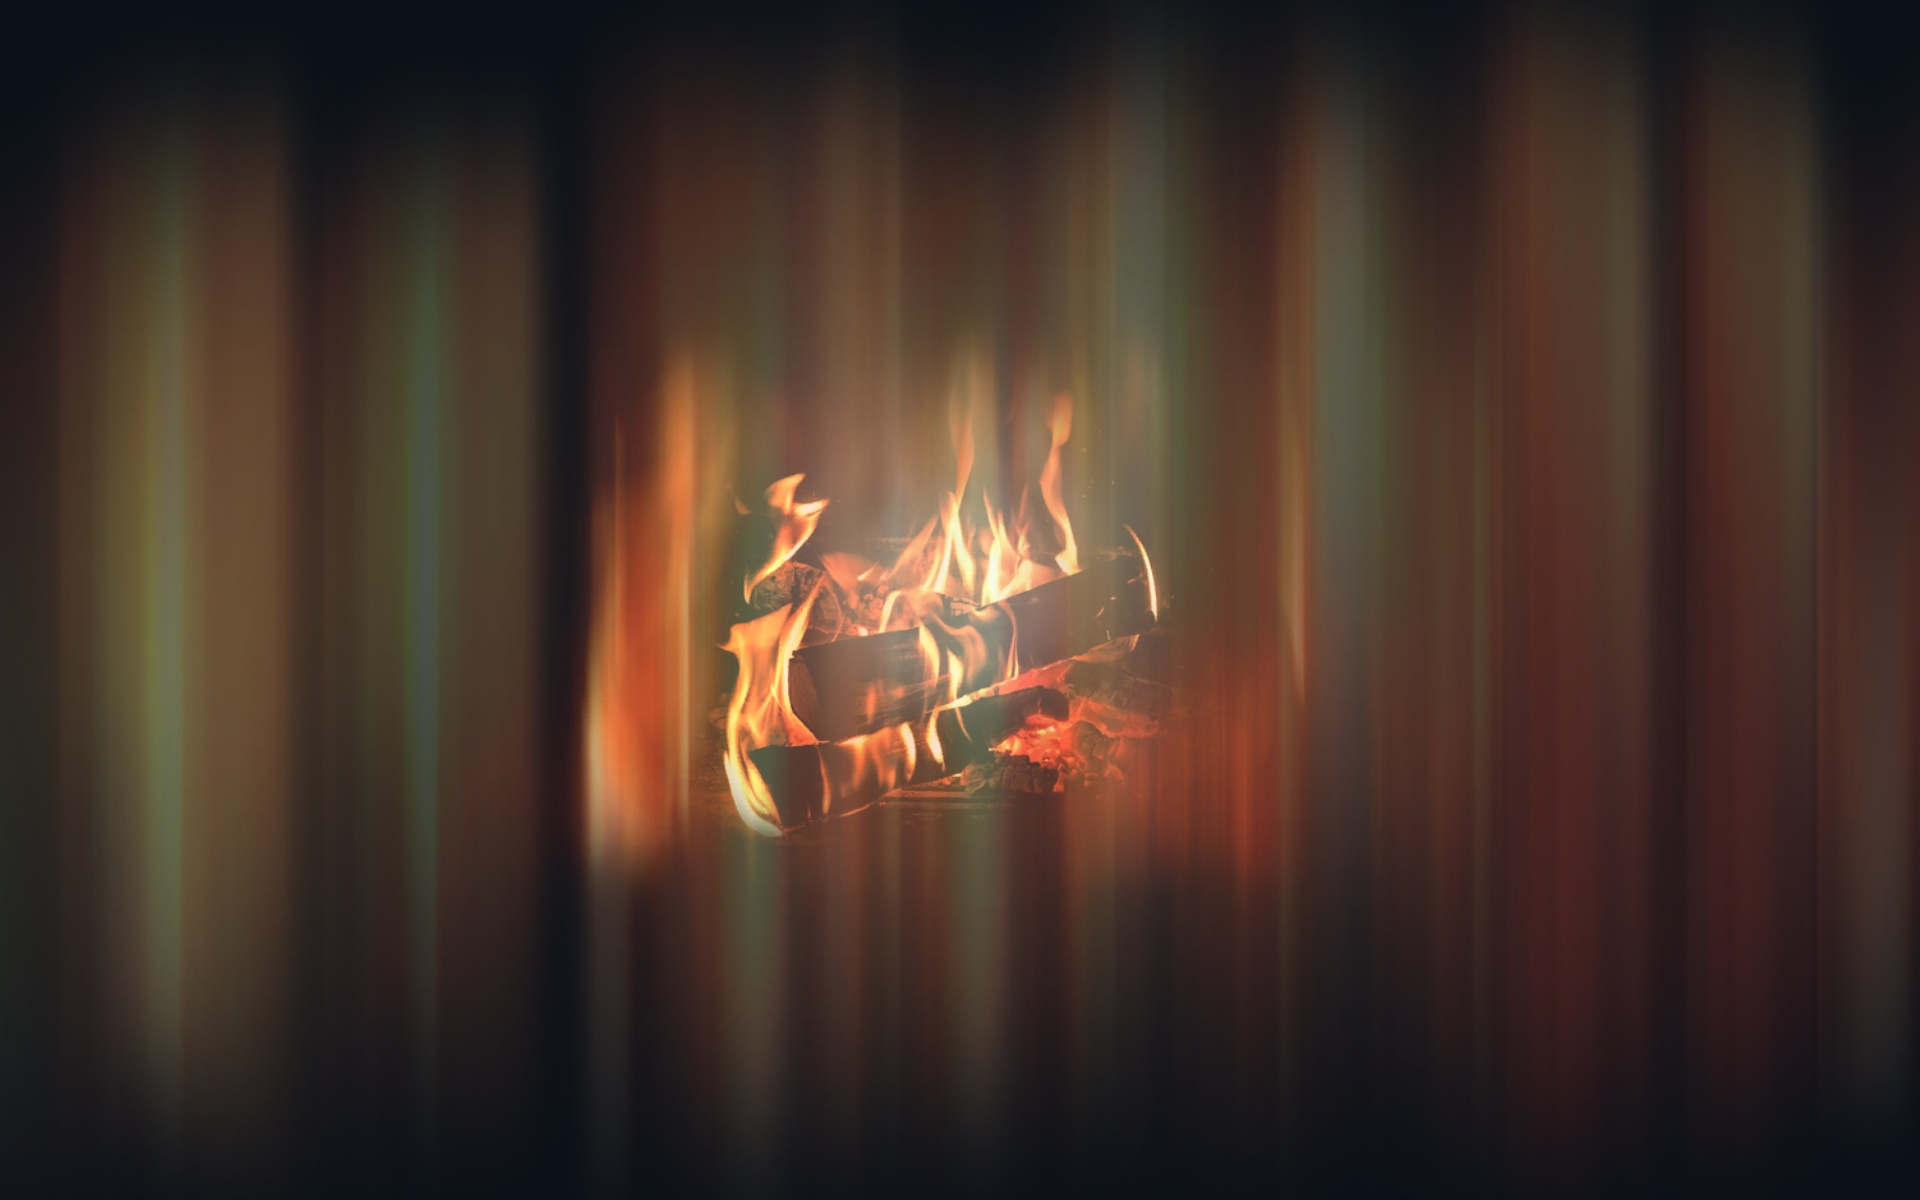 wdr unity app visualization of fireplace